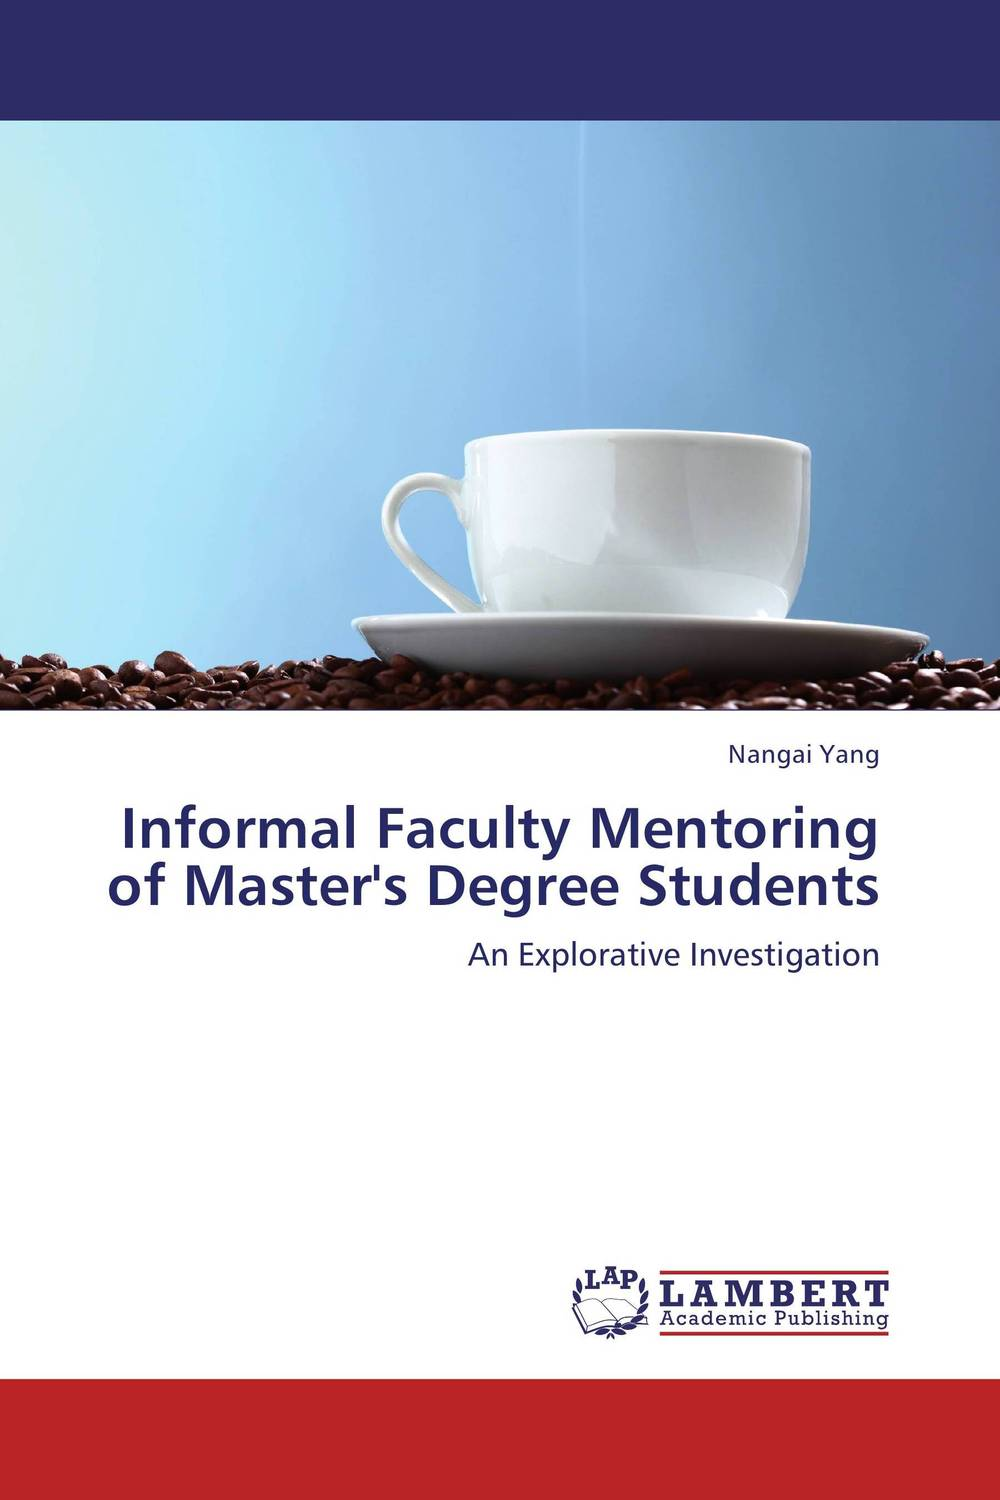 Informal Faculty Mentoring of Master's Degree Students